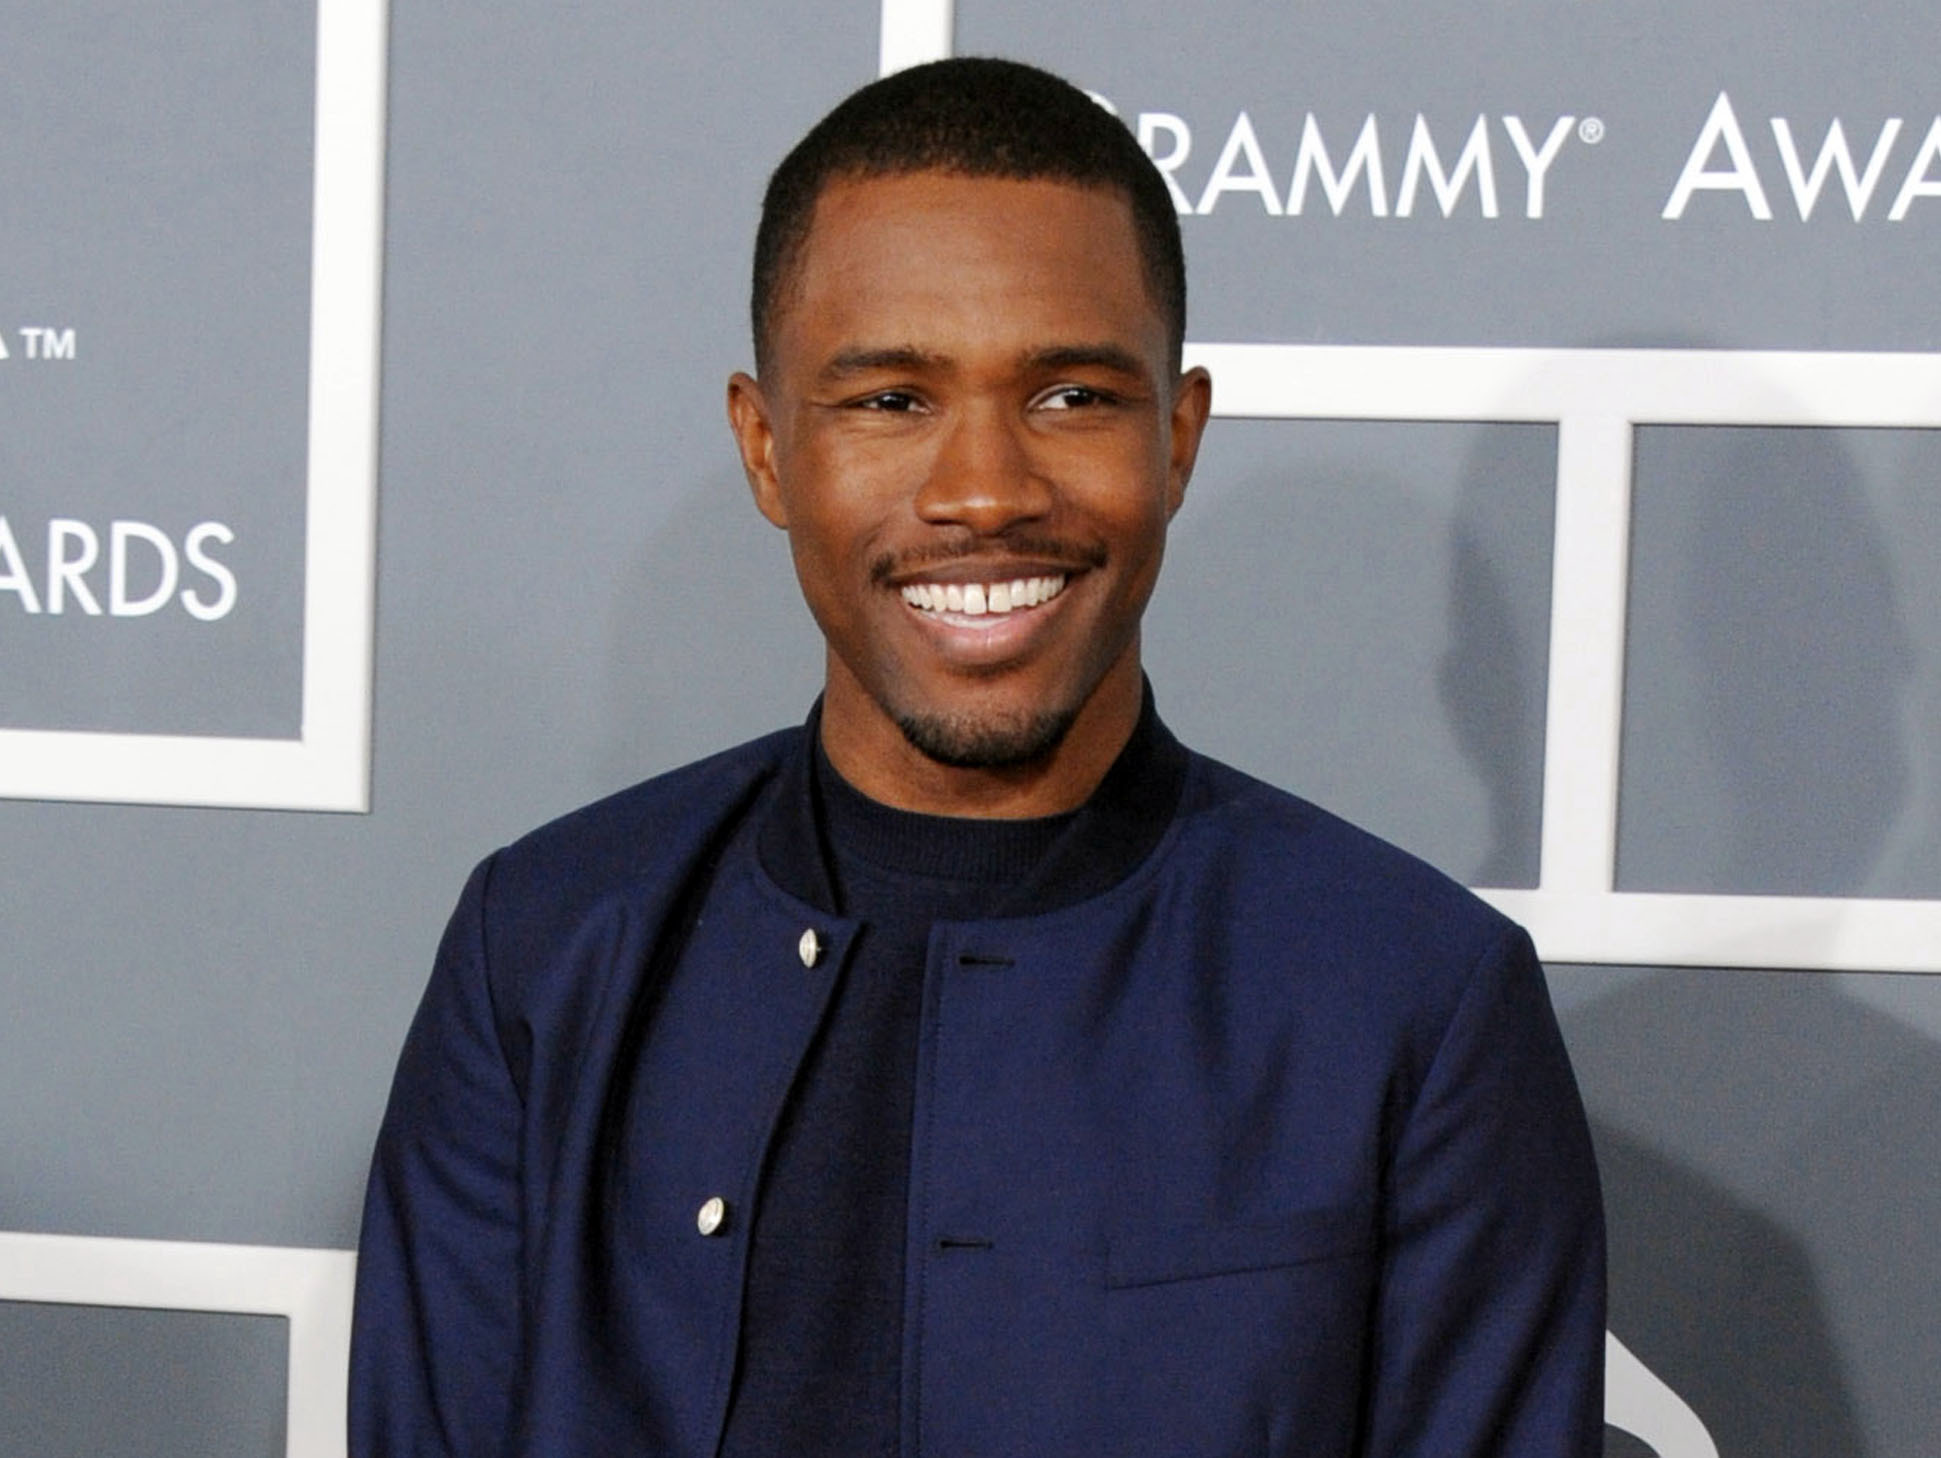 Frank Ocean arrives at the 55th annual Grammy Awards in Los Angeles, on Feb. 10, 2013.